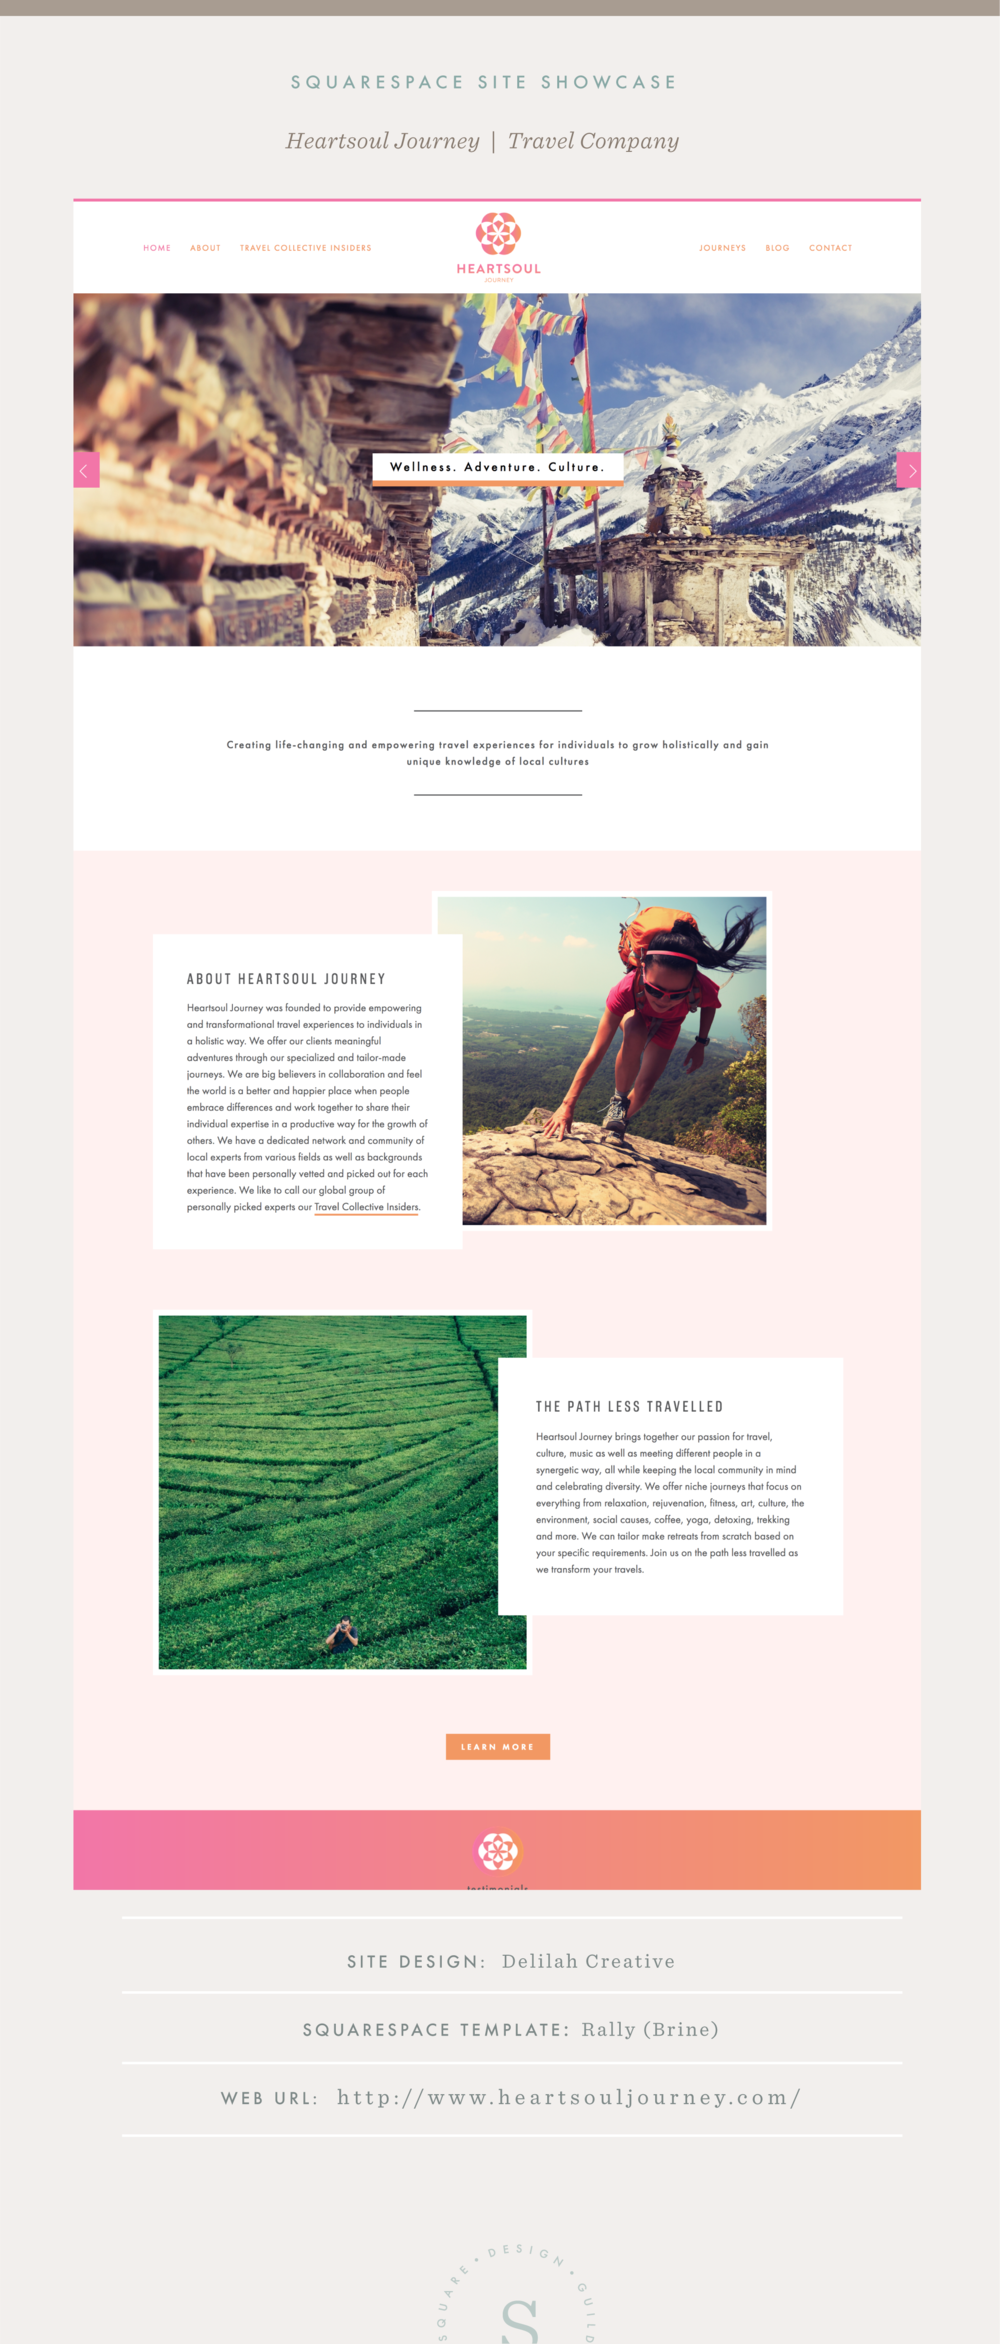 Squarespace Site Showcase | brine template | Heartsoul Journey